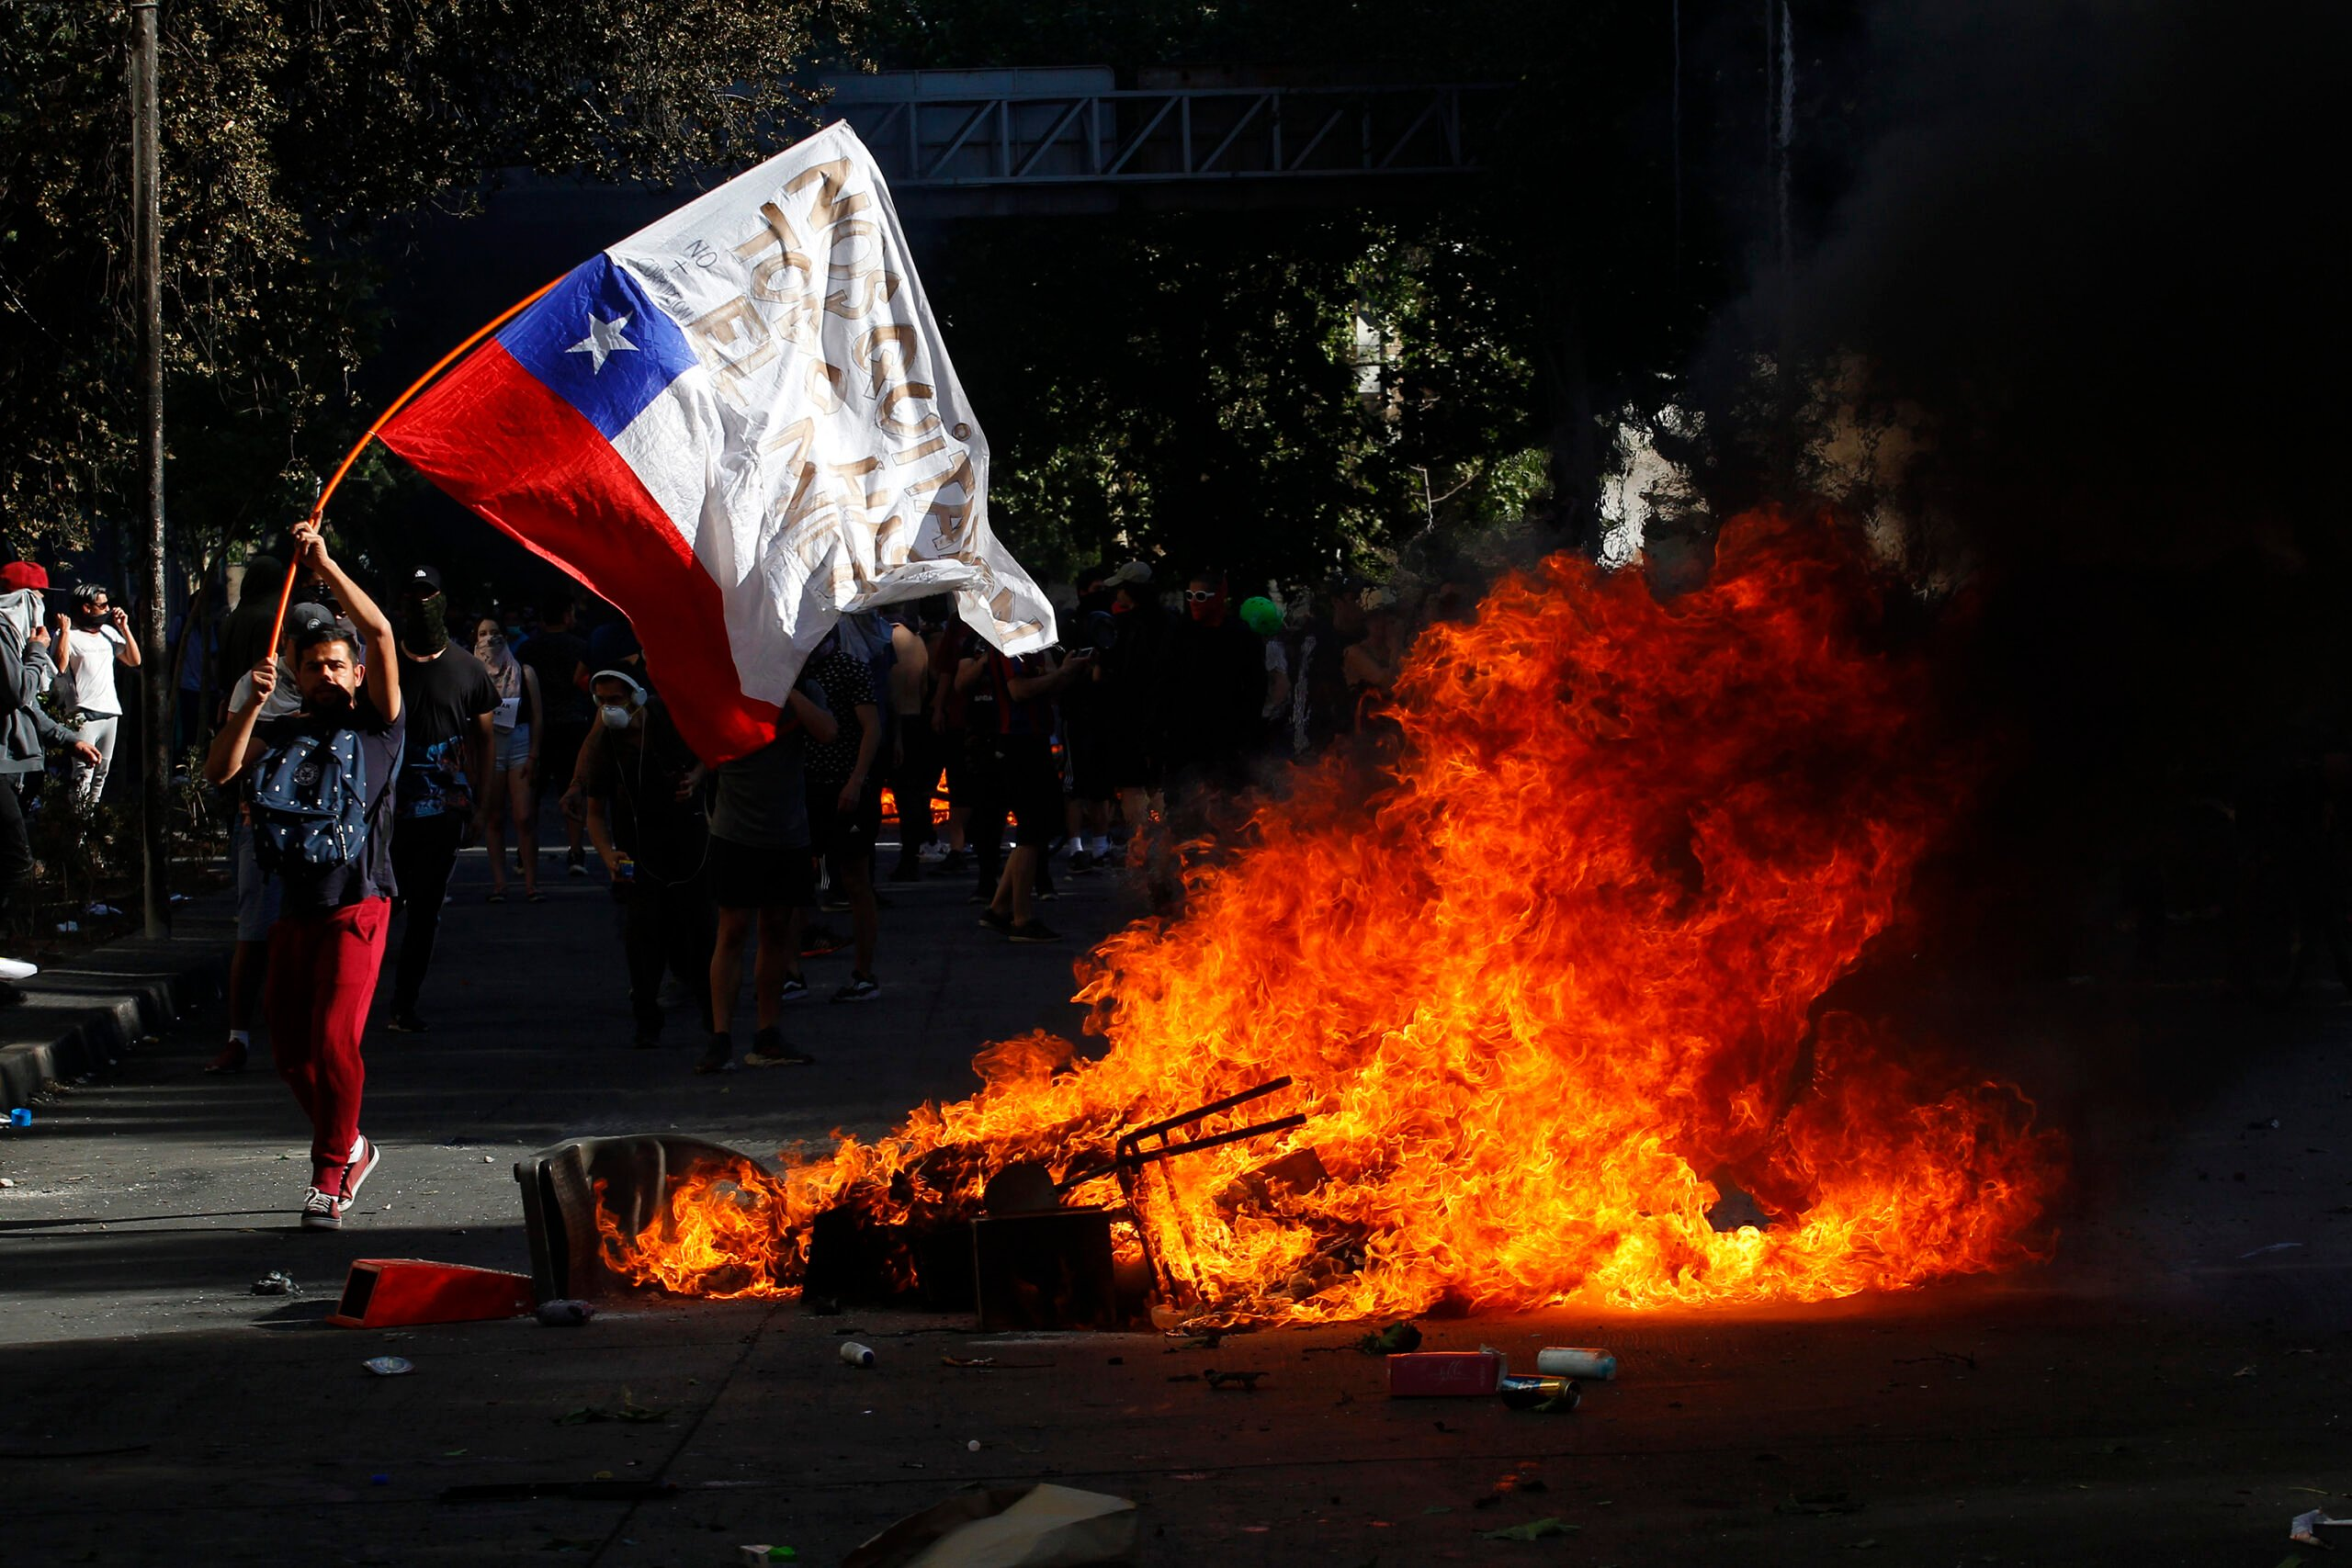 Chile is at the dawn of a new political era